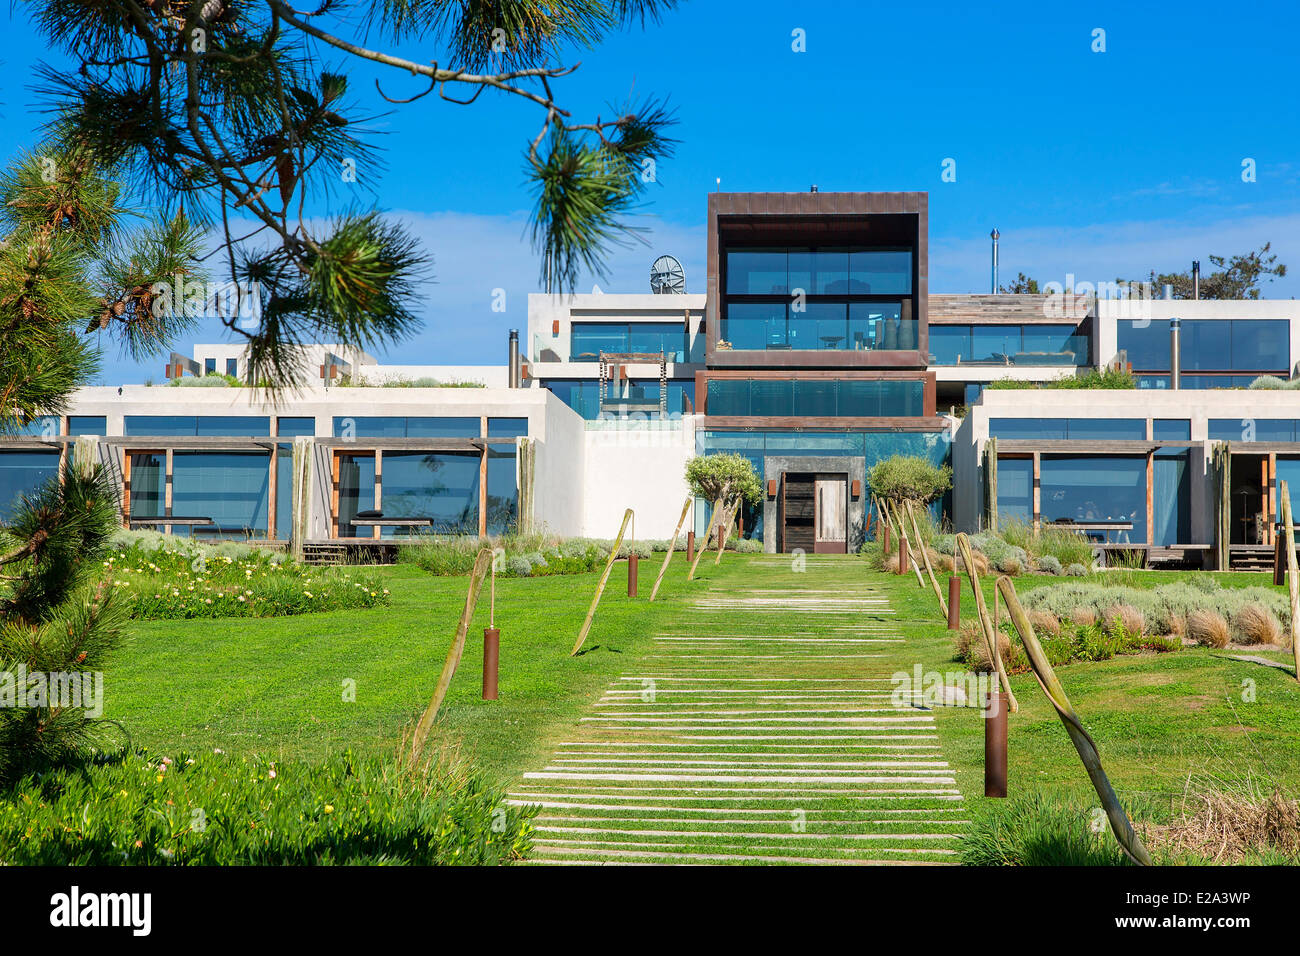 Portugal, Centro Region, a Dos Cunhados, Areias do Seixo Charm Hotel and Residences, - Stock Image